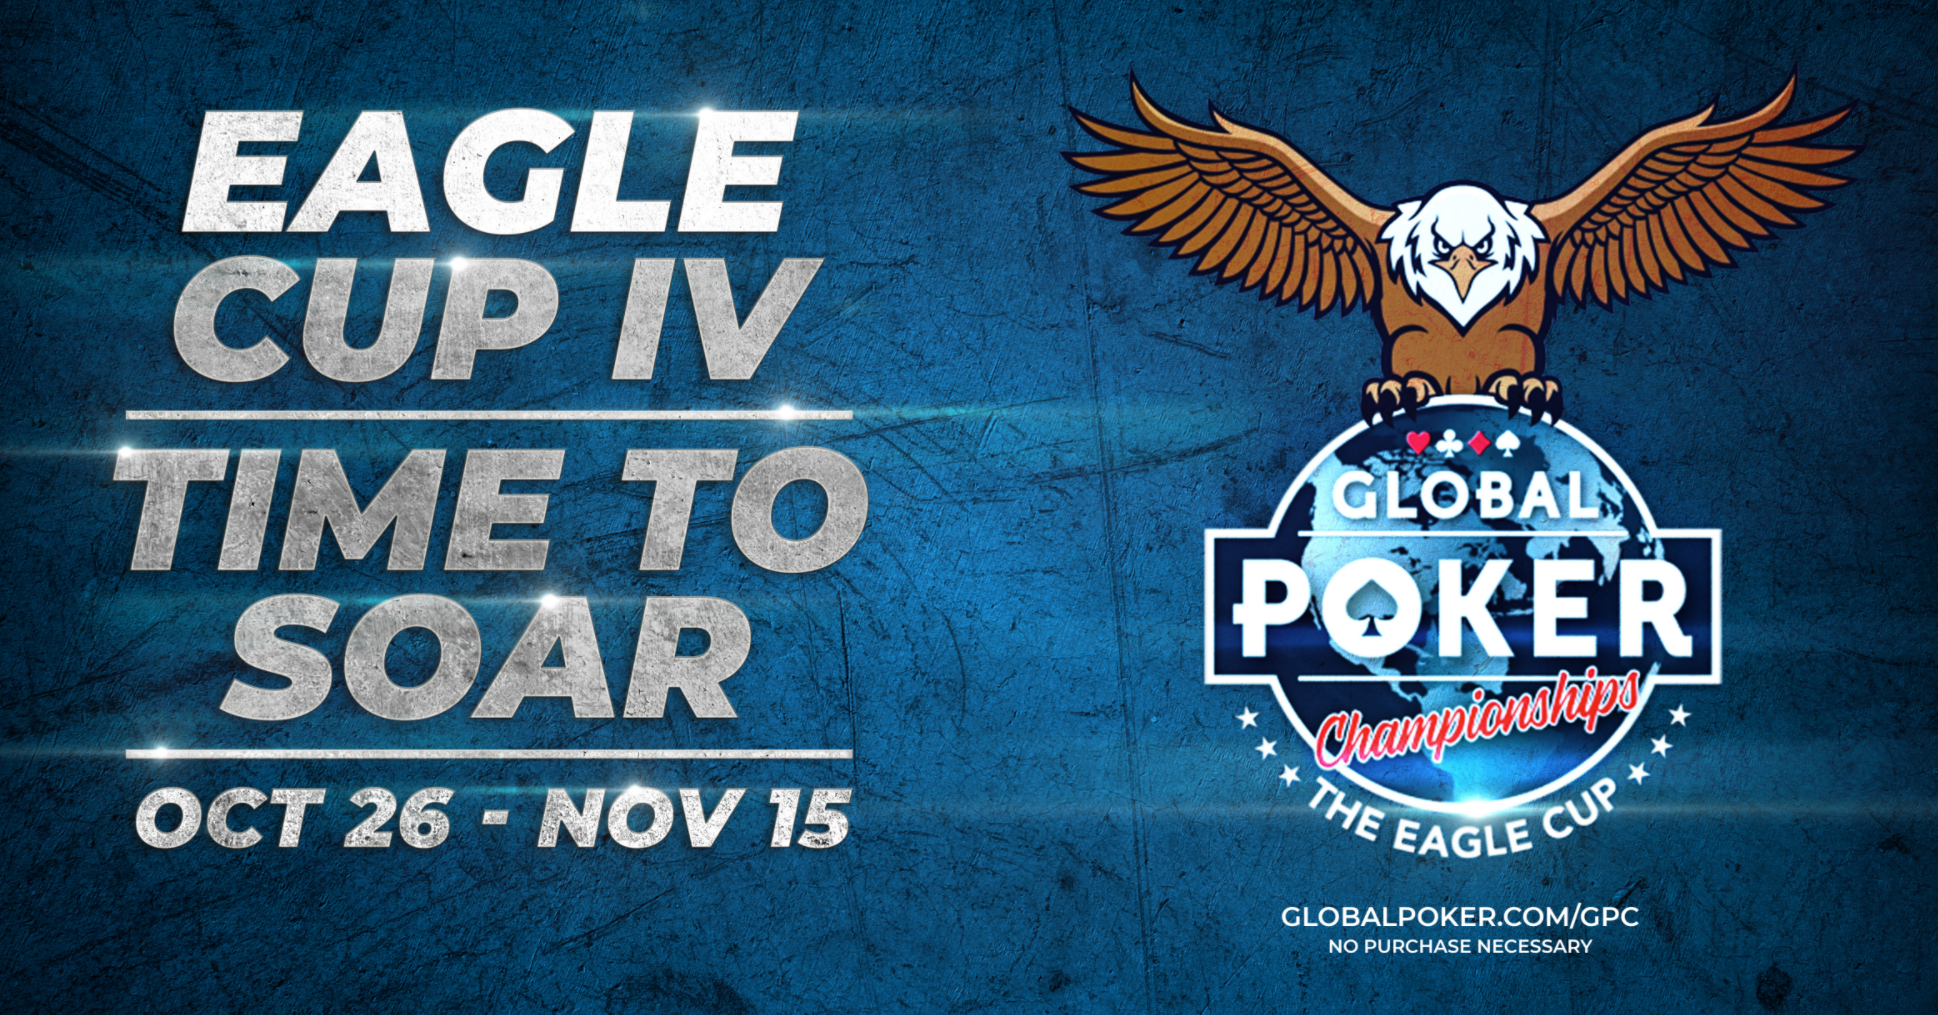 Eagle Cup IV Kicks Off on Global Poker with Over 1.2 Million in Guaranteed Sweeps Coin Prizes